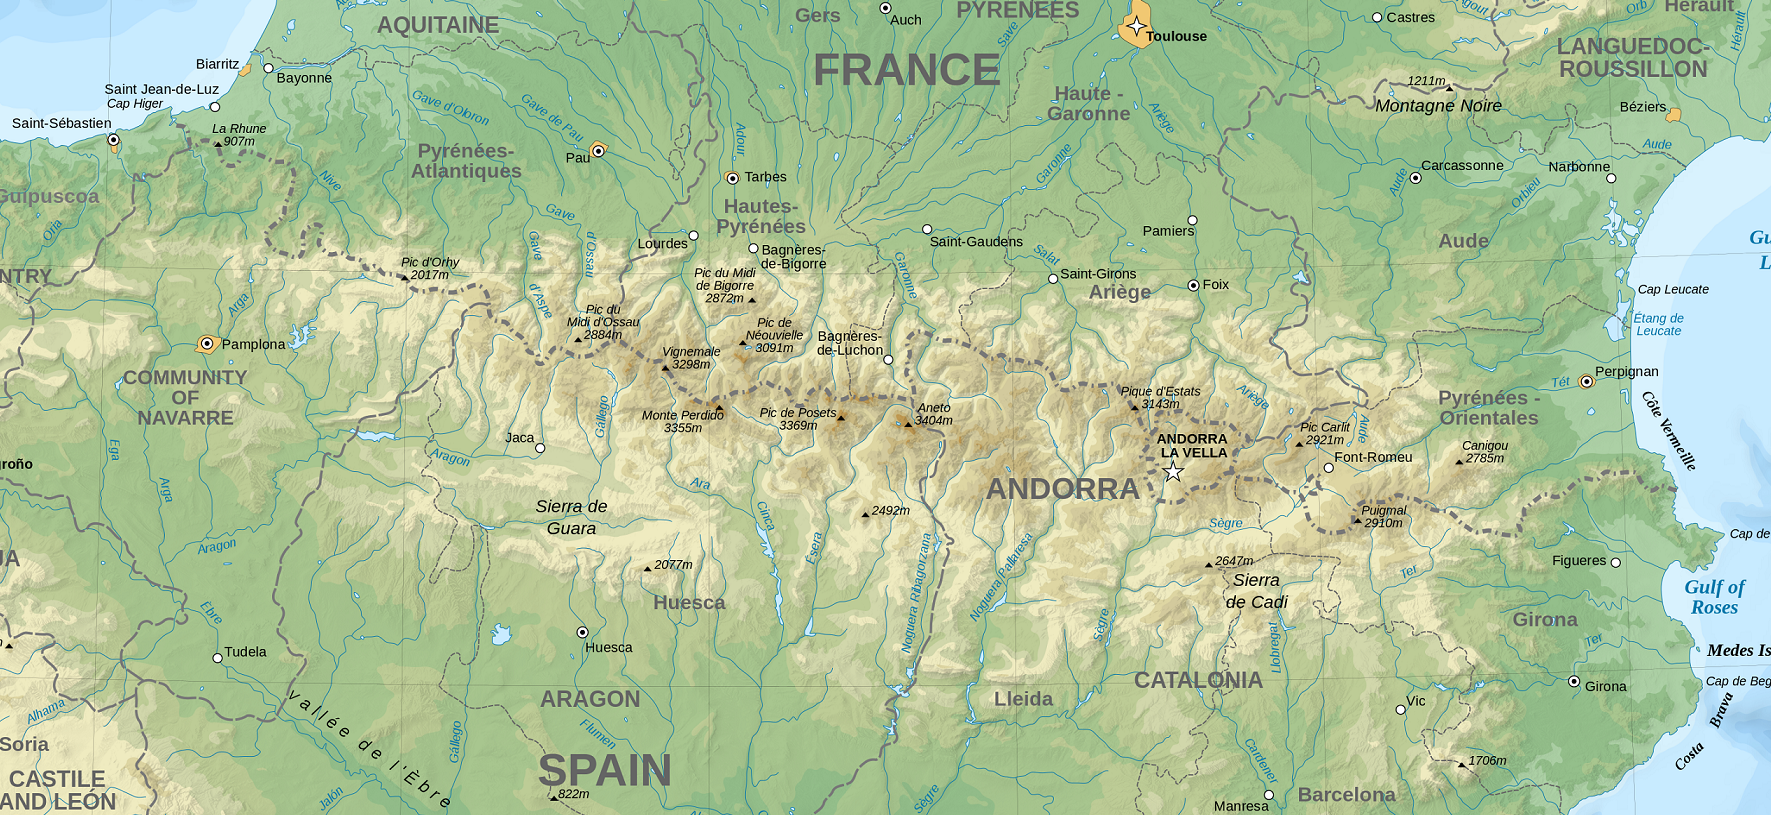 Pyrenees Map | weepingredorger